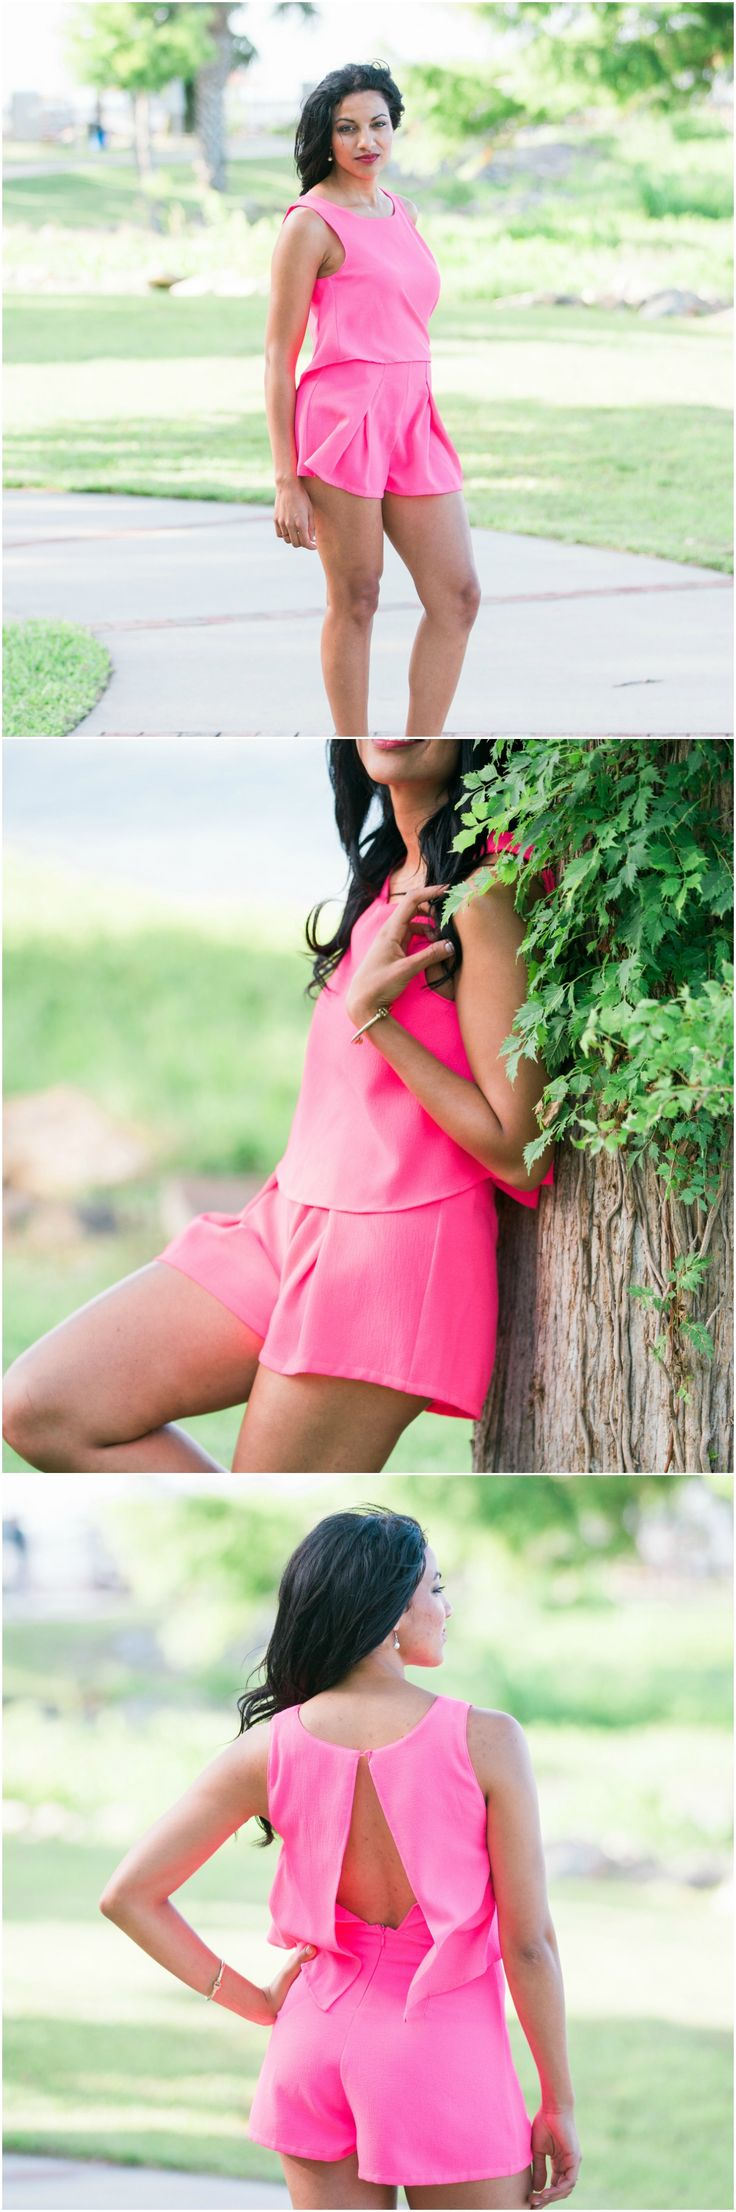 This is the hottest romper you can buy this year! With its electric and vibrant color you will be the show stopper no matter where you are! The tired fit is perfect for all body types and will be cool in the summer heat with an open back with a zipper and button closure. women's summer outfit, romper, jumper, one piece, hot pink, open back romper. summer outfit.